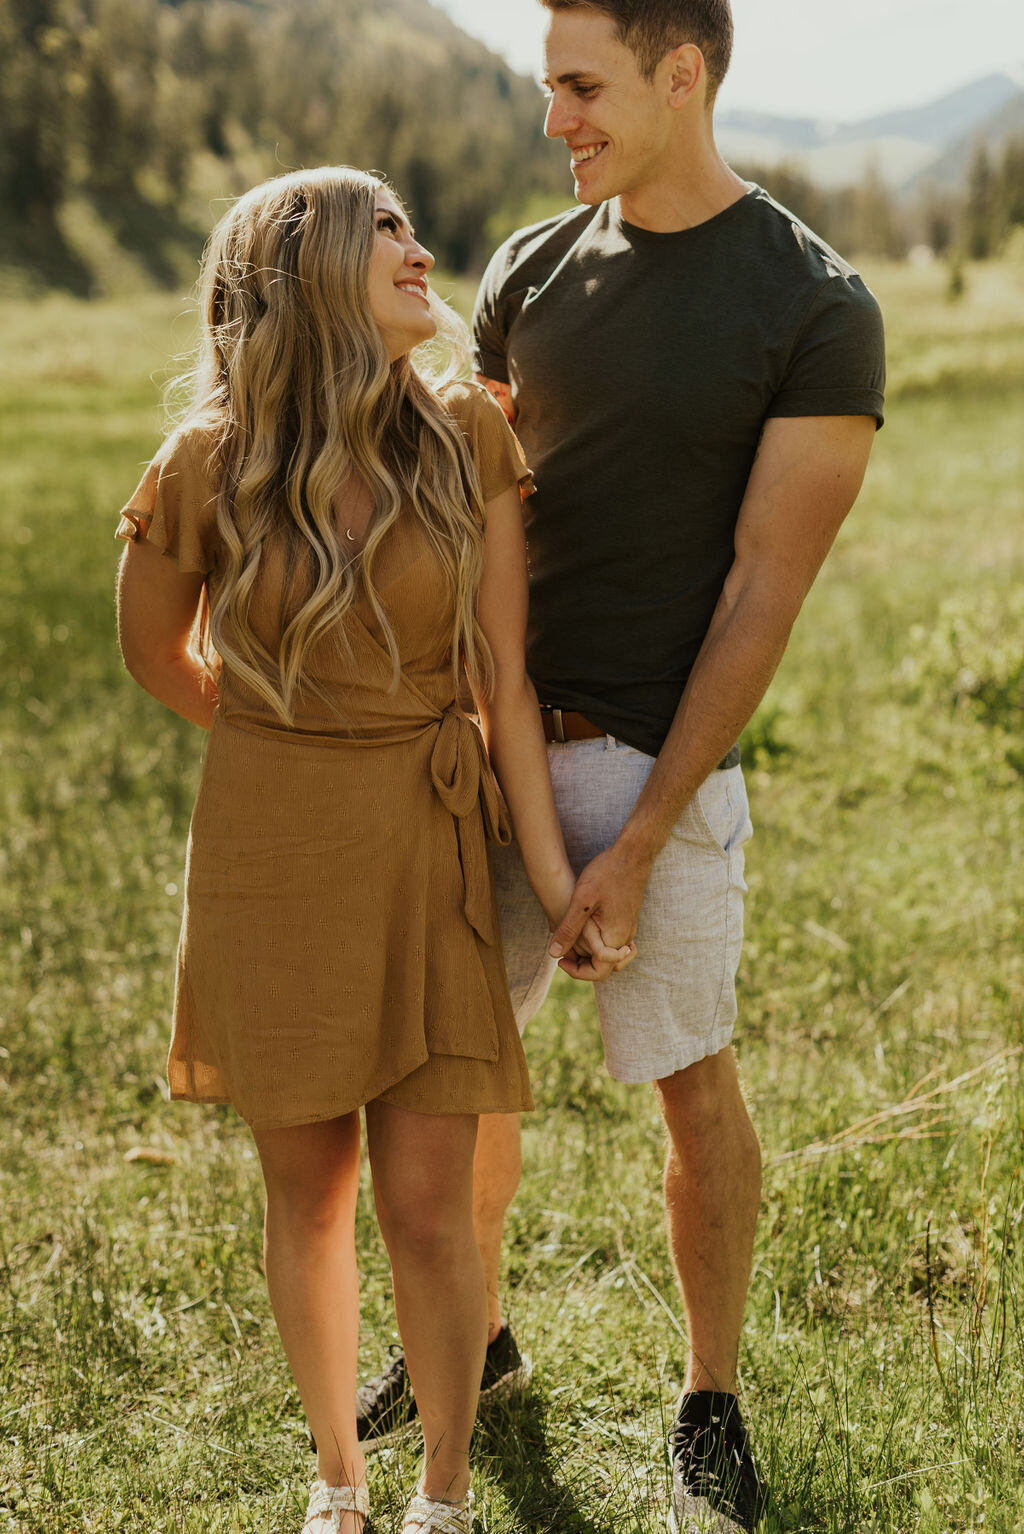 mountain-engagement-session-provo-utah-kyle-and-taylor-12.jpg